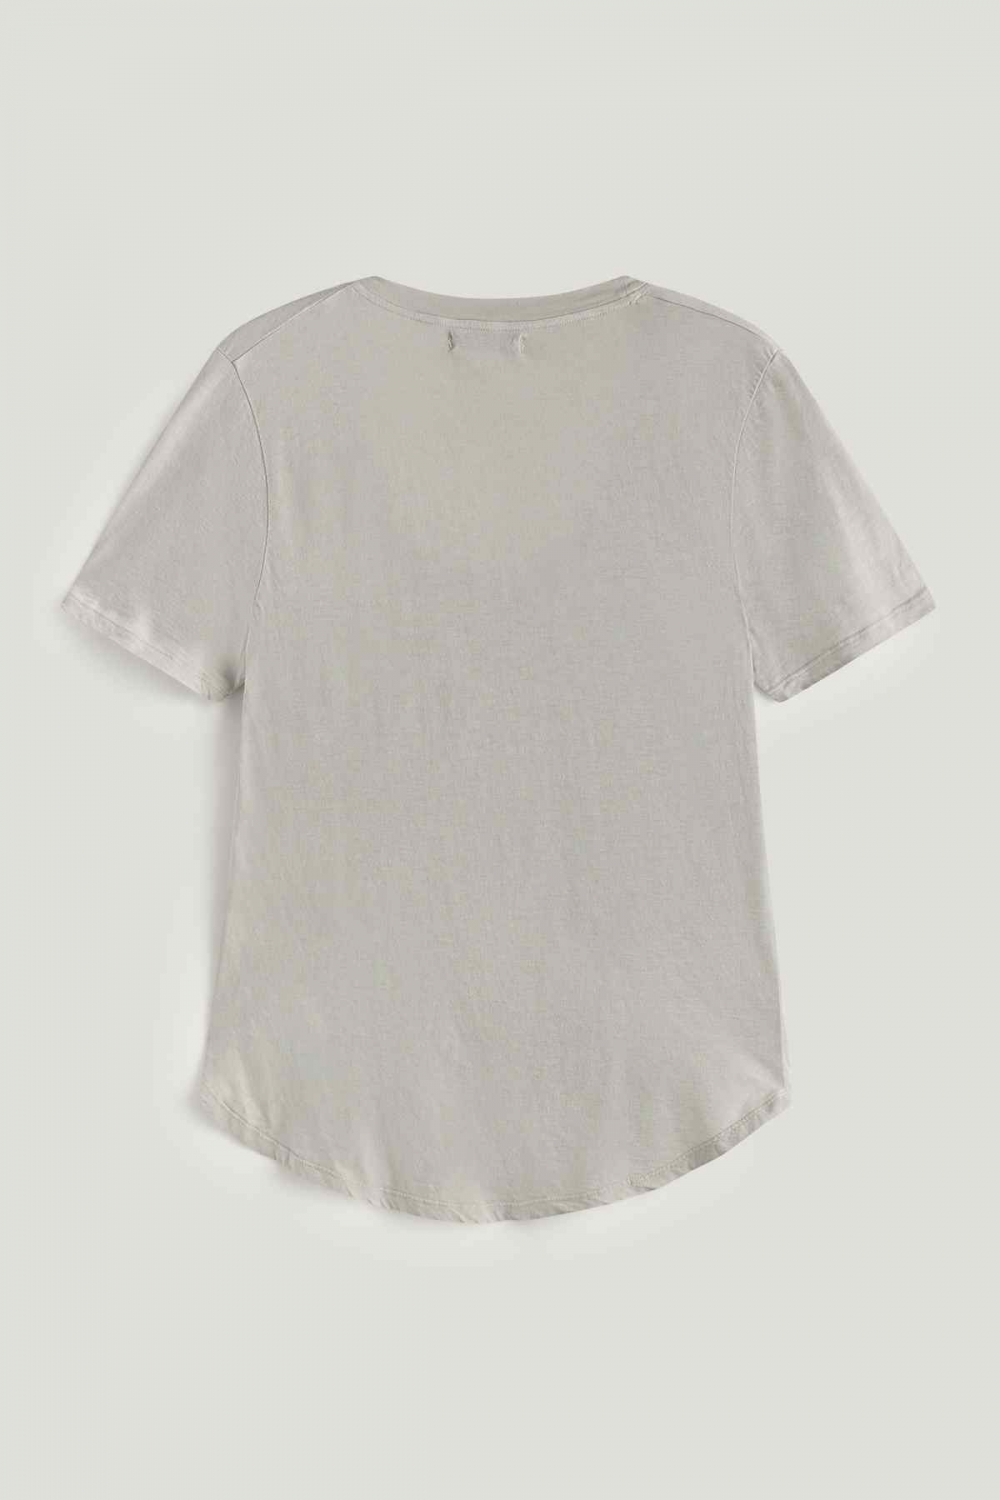 SARAH T-SHIRT IN WASHED ICE...